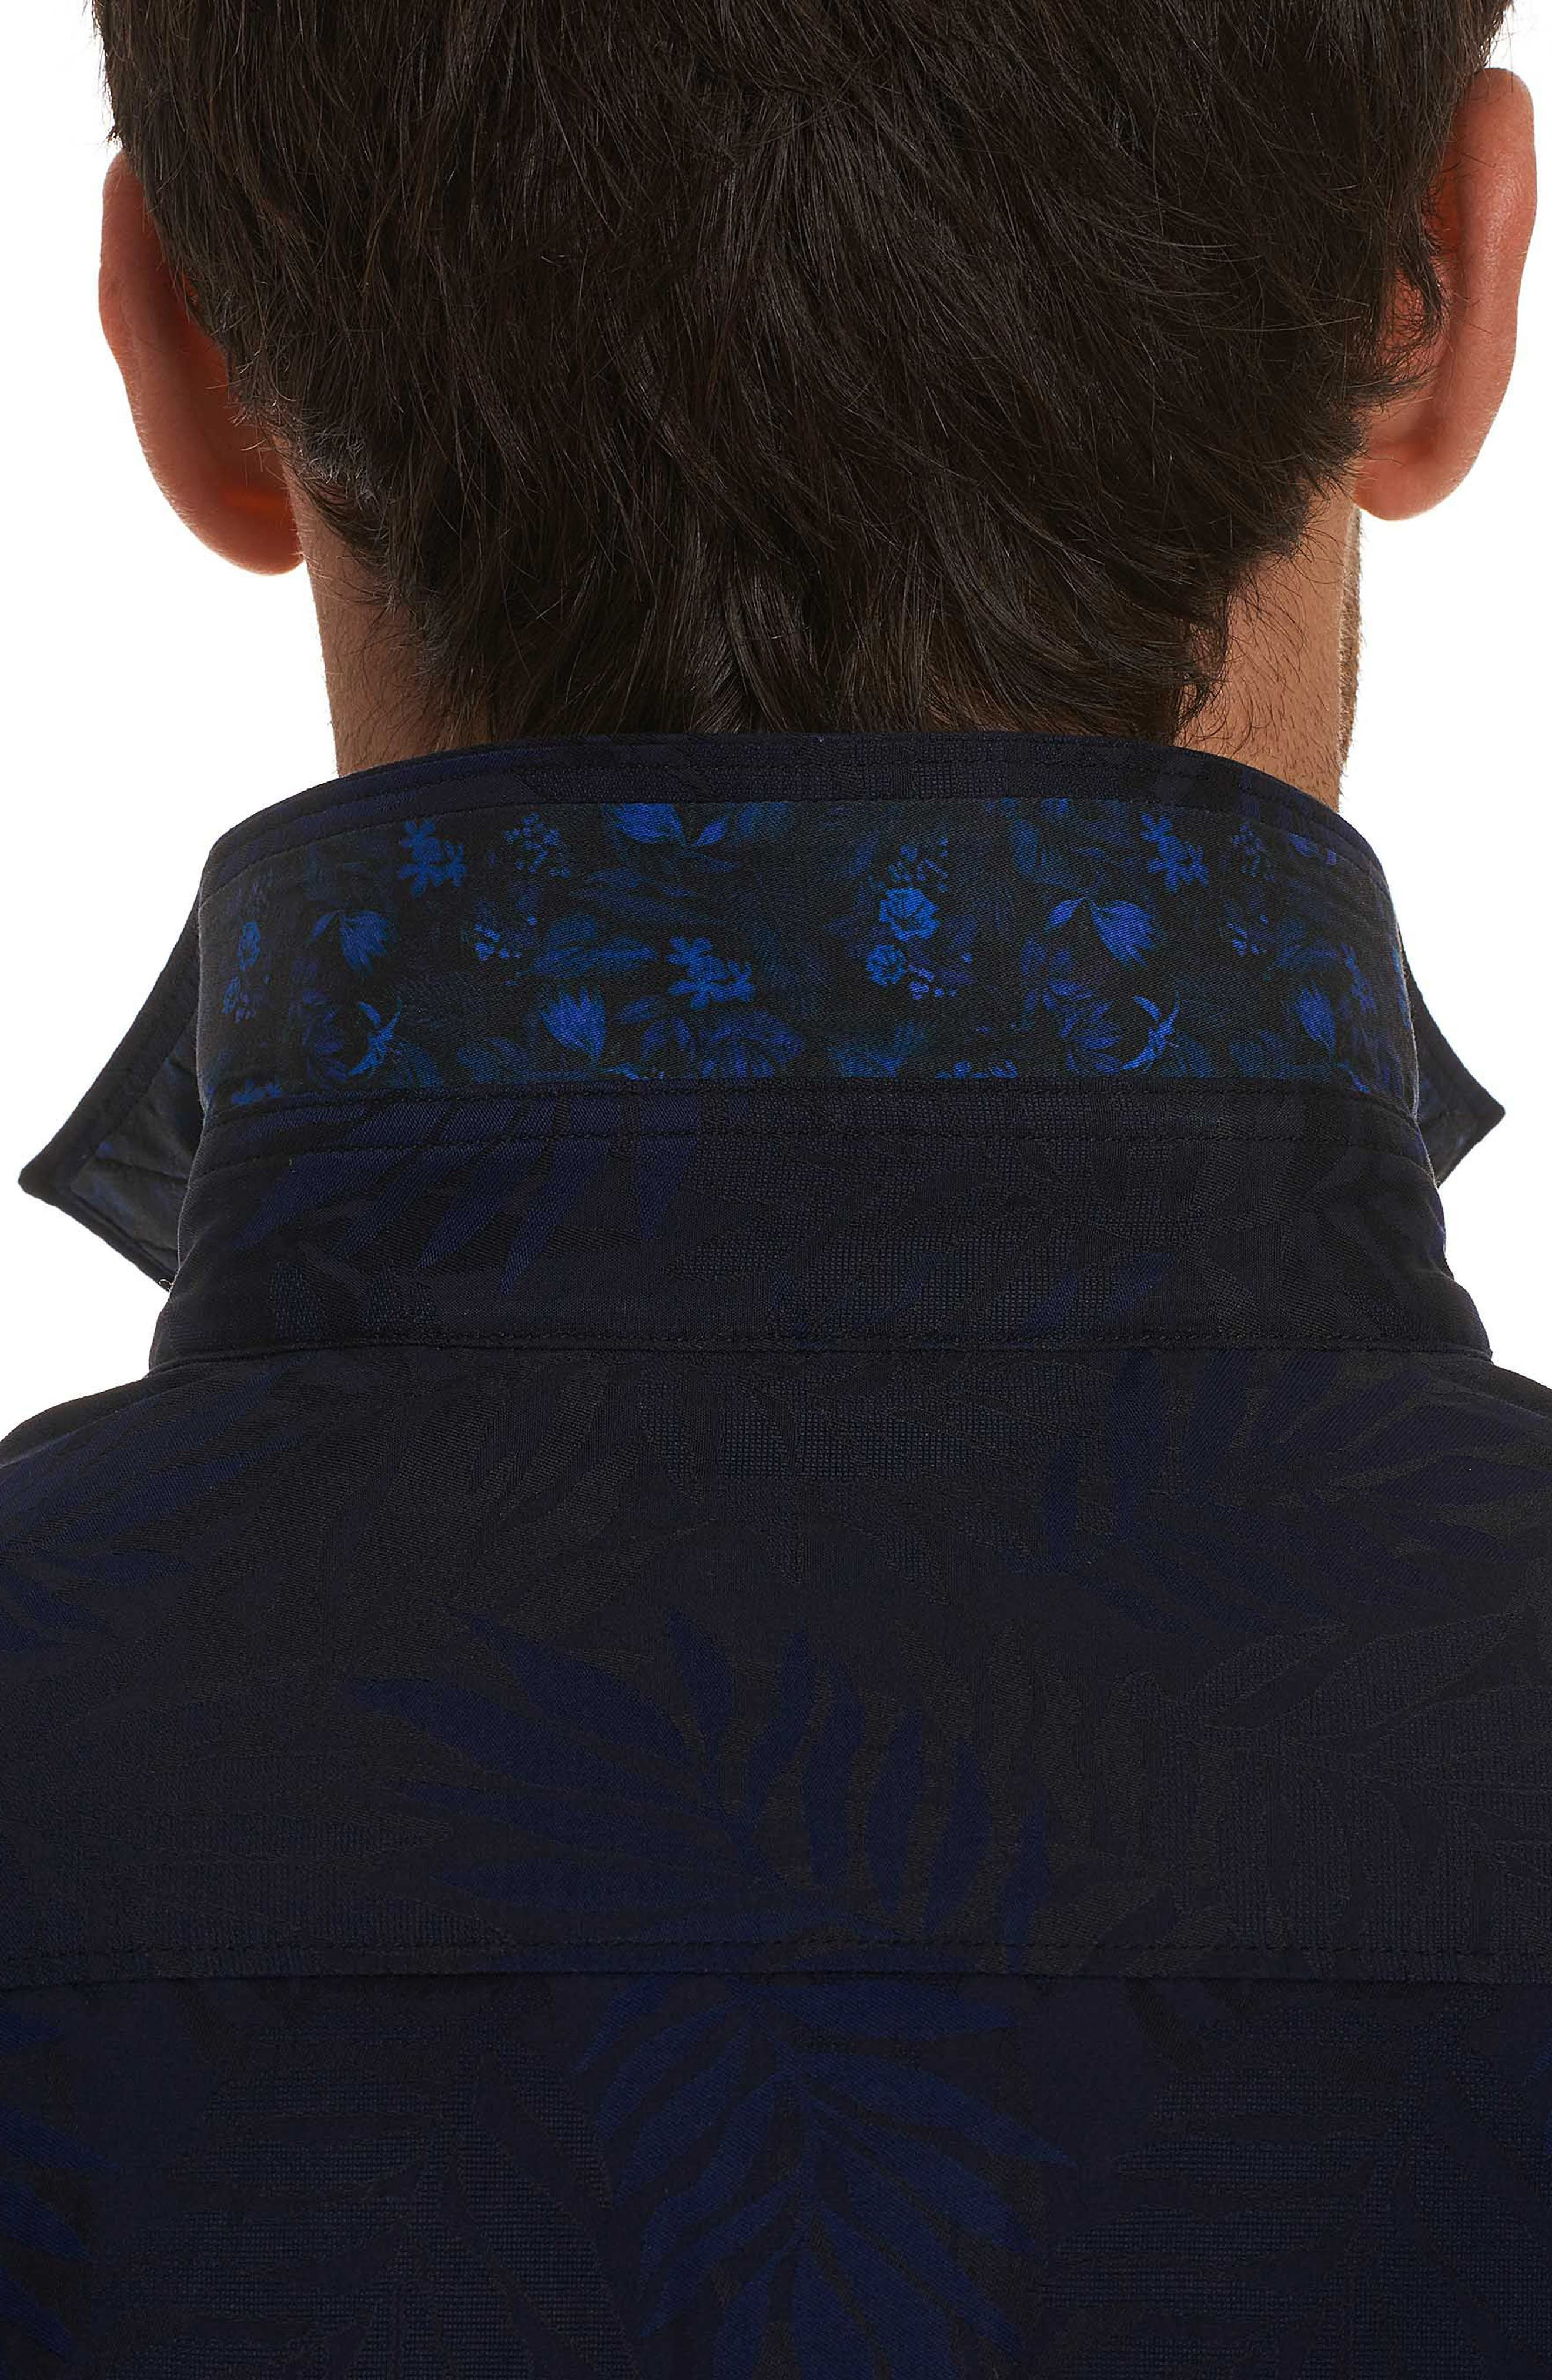 Monte Classic Fit Sport Shirt,                             Alternate thumbnail 4, color,                             Midnight Navy